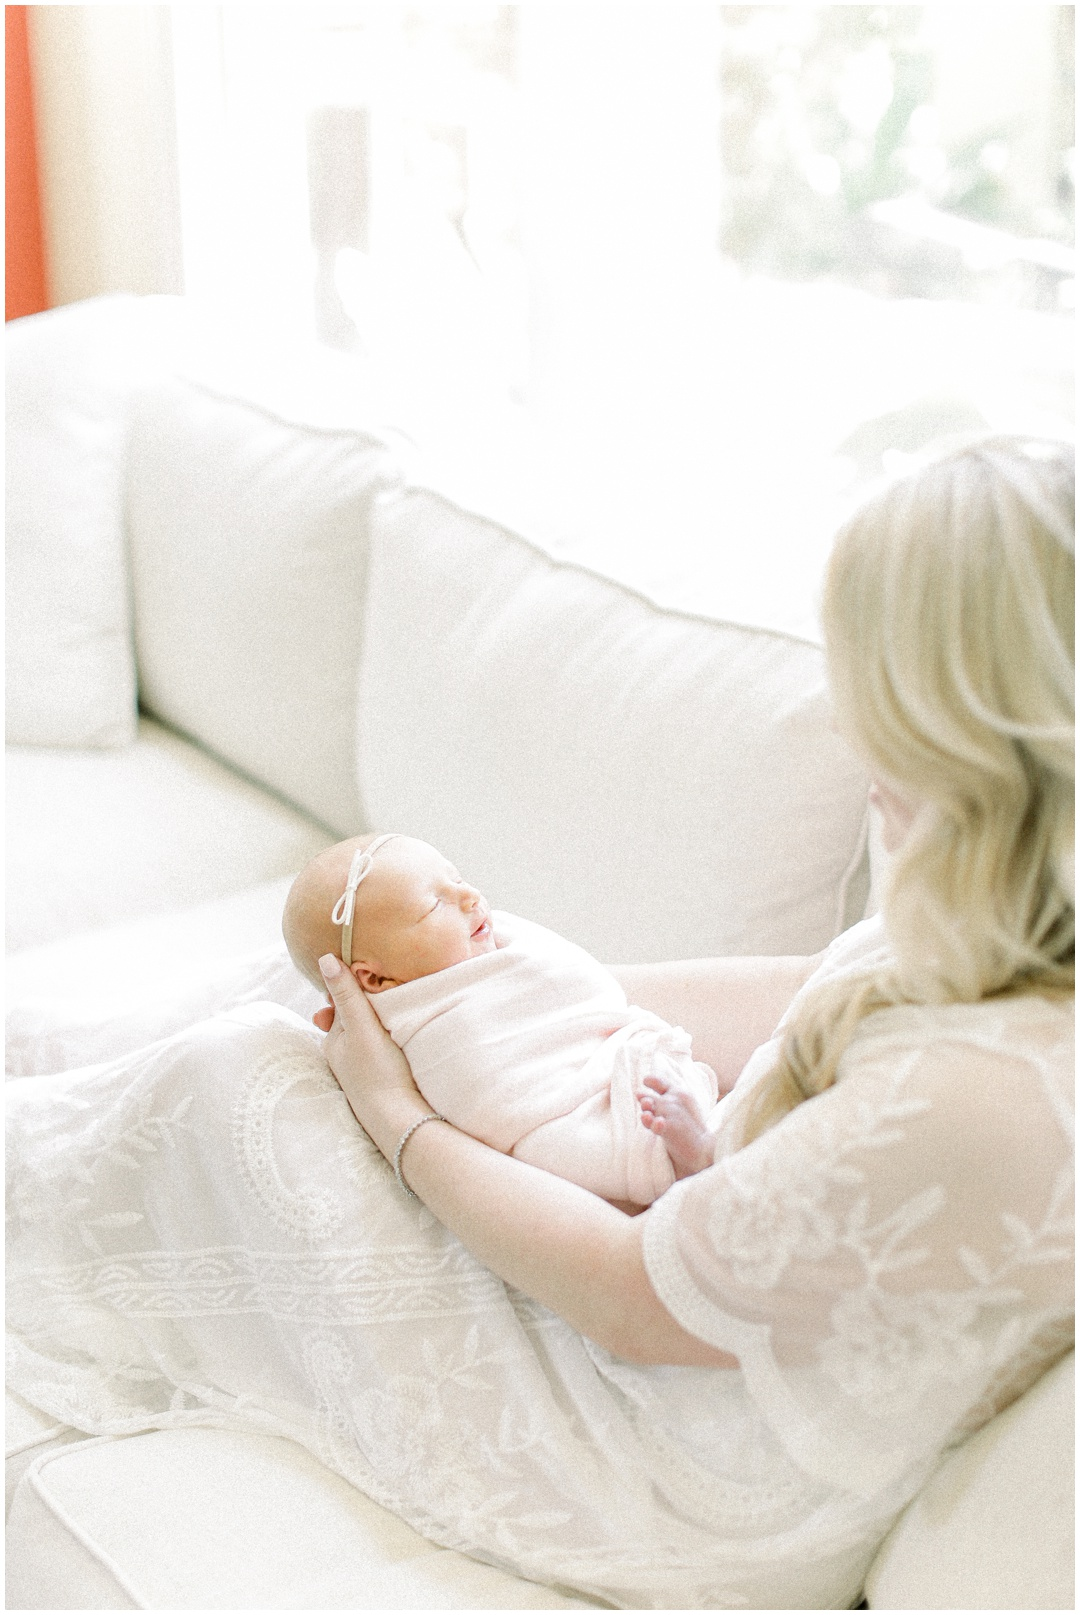 Newport_Beach_Newborn_Light_Airy_Natural_Photographer_Newport_Beach_Photographer_Orange_County_Family_Photographer_Cori_Kleckner_Photography_Newport_Beach_Photographer_newborn_kole_calhoun56_kole_calhoun_Jennifer_Calhoun_Knox_Calhoun_3771.jpg